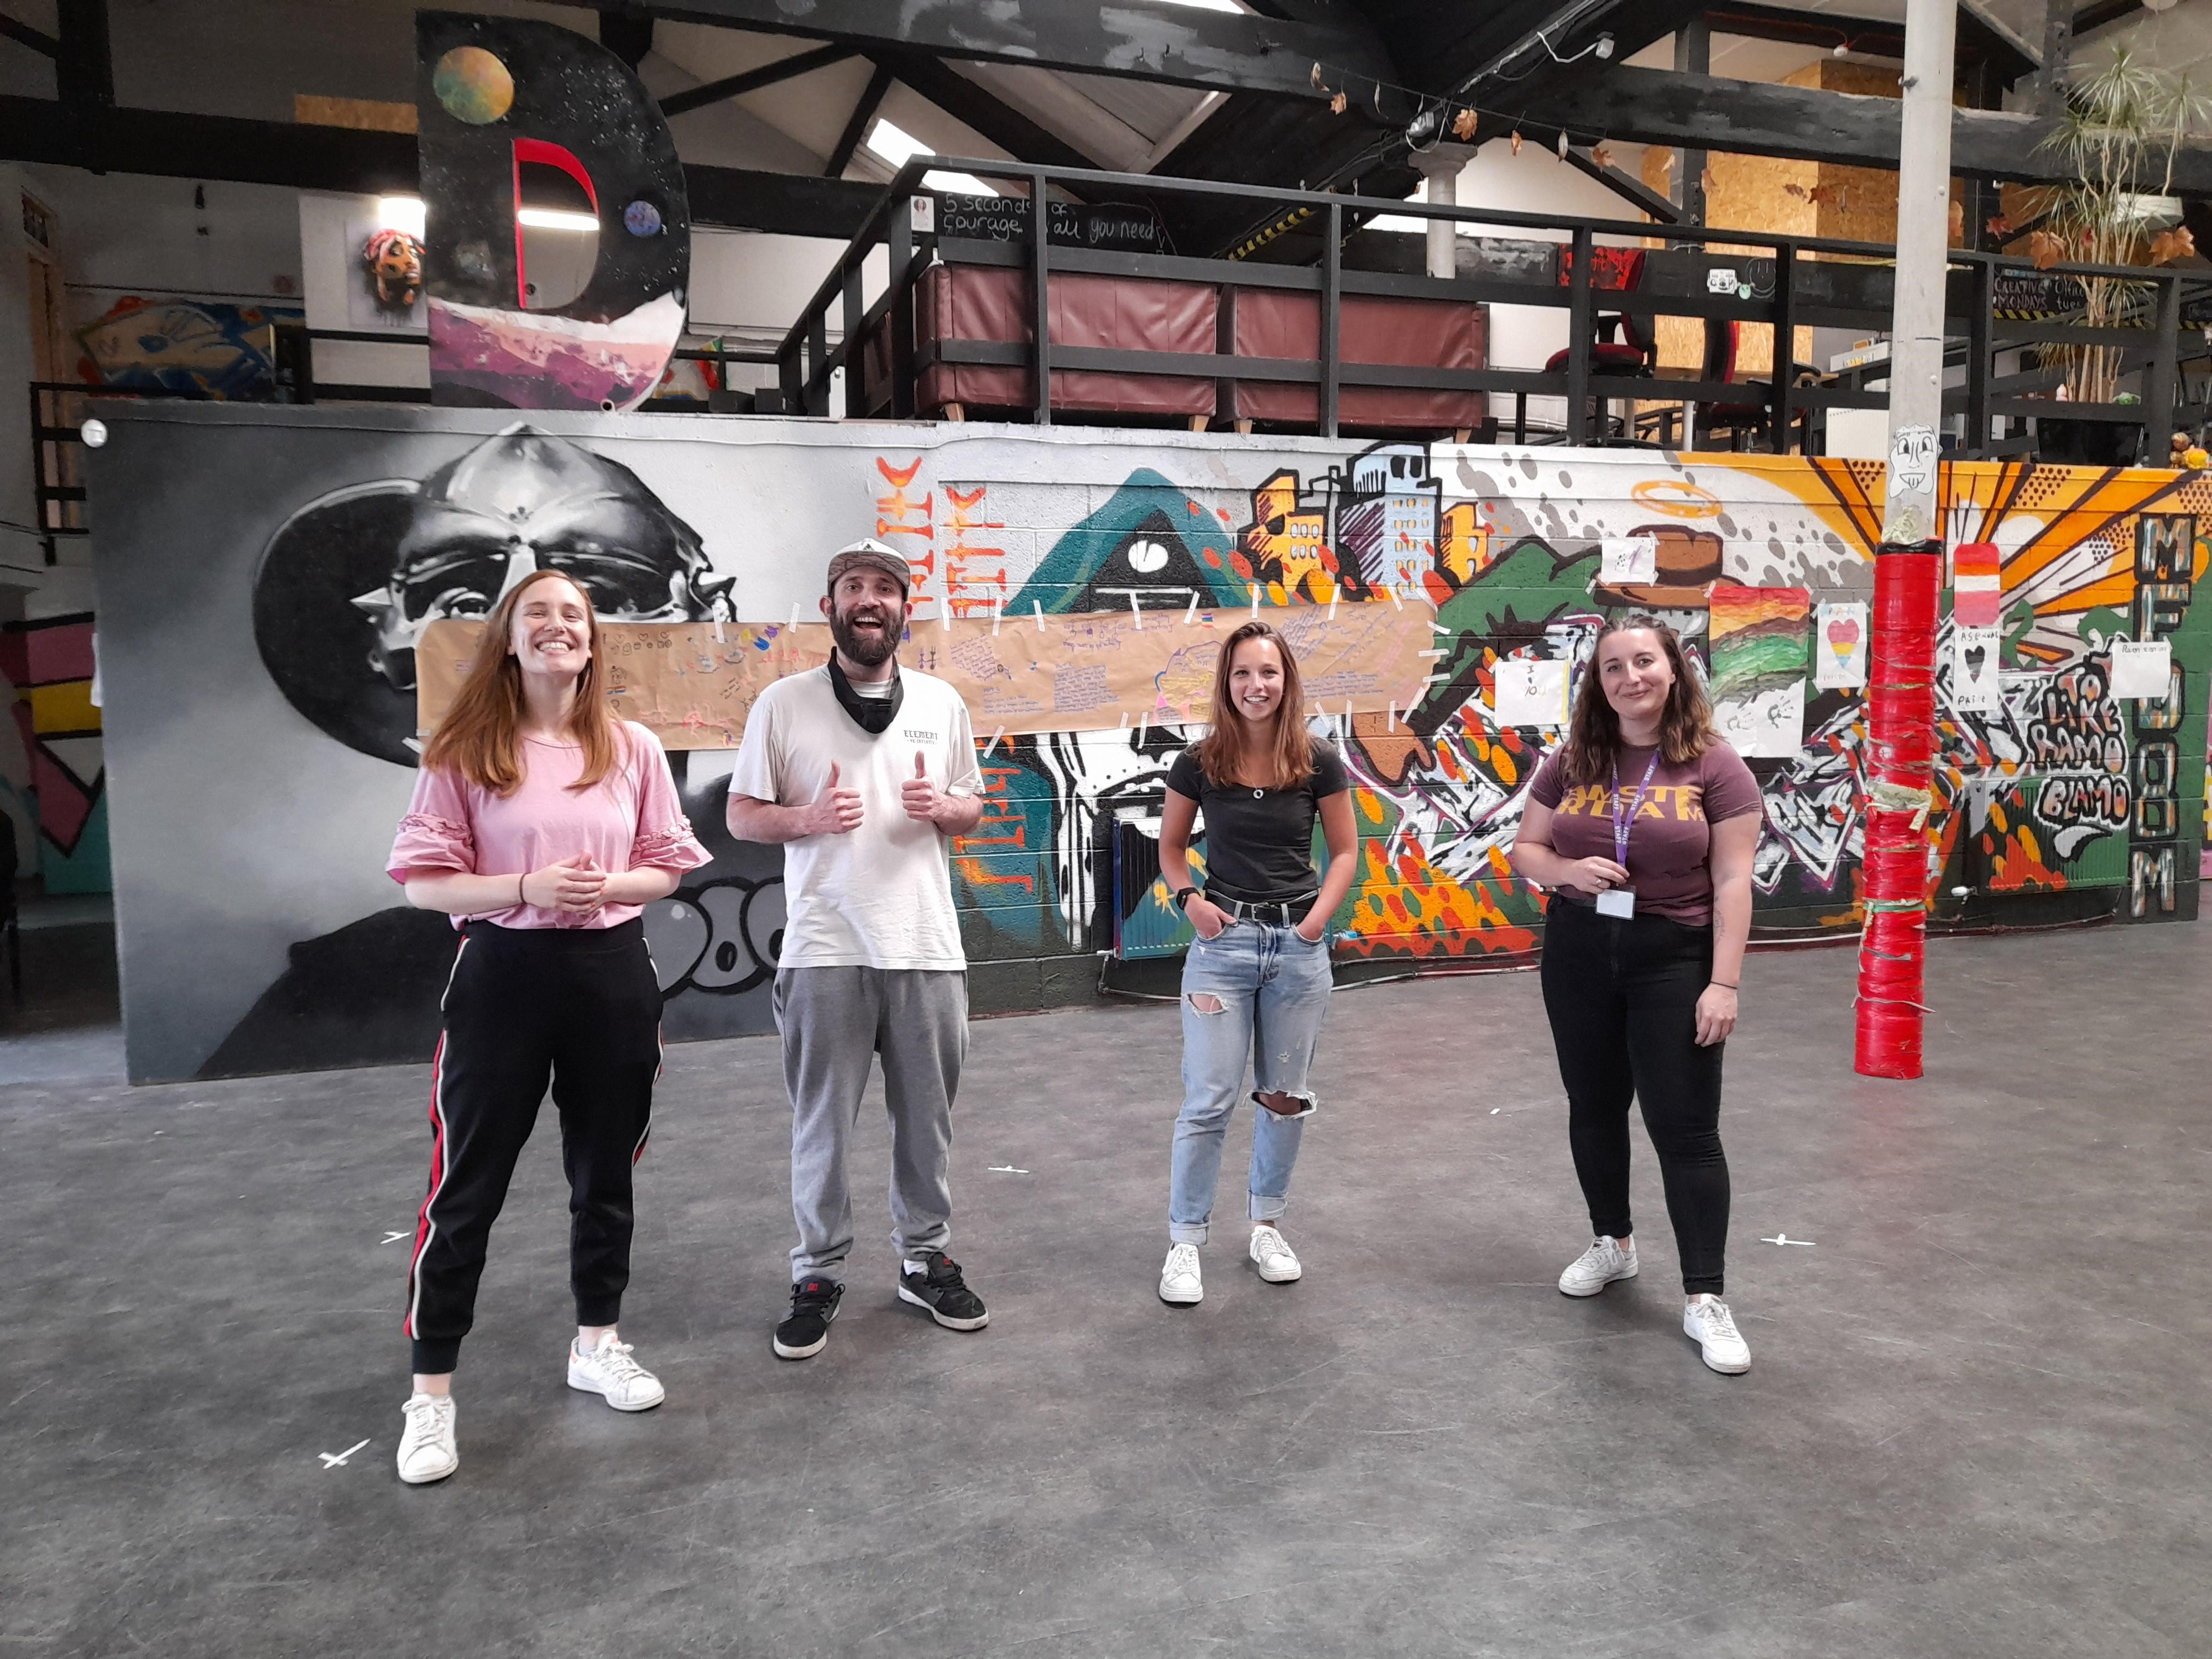 Creative Project Gives Young People A Voice